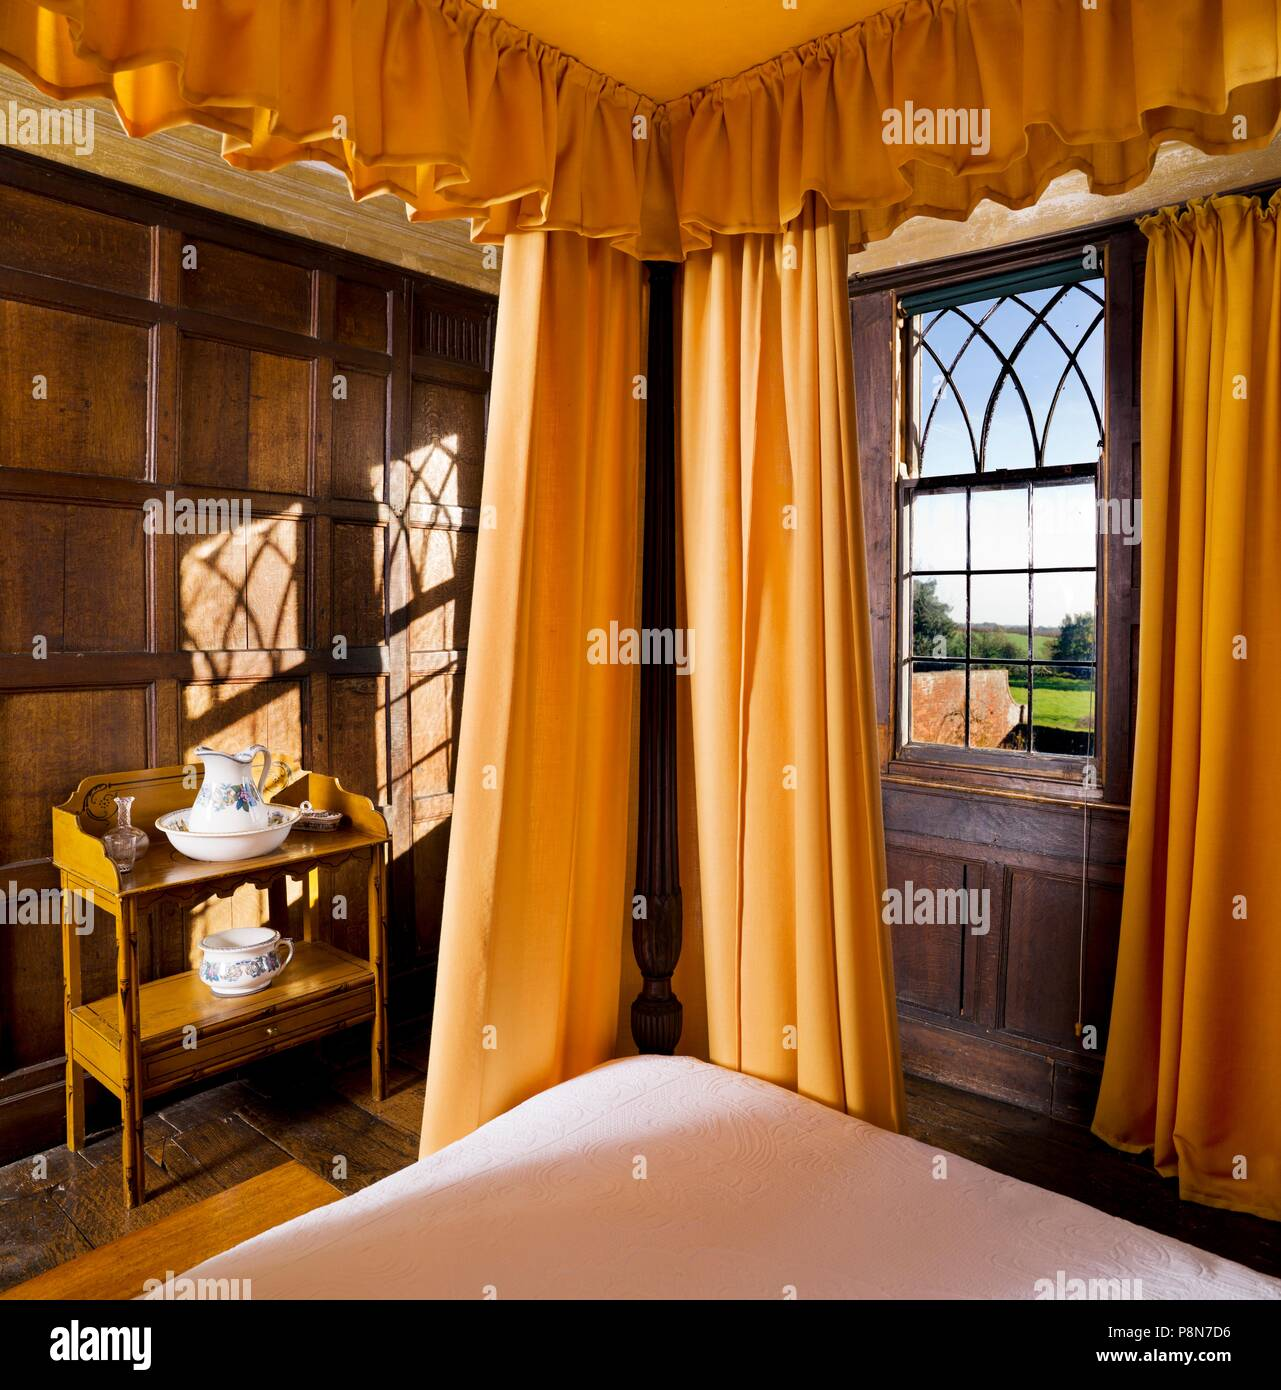 Four poster bed in the Squire's Room, Boscobel House, Shropshire, c1980-c2017. The half-timbered 17th century Boscobel House is famous as the place wh - Stock Image